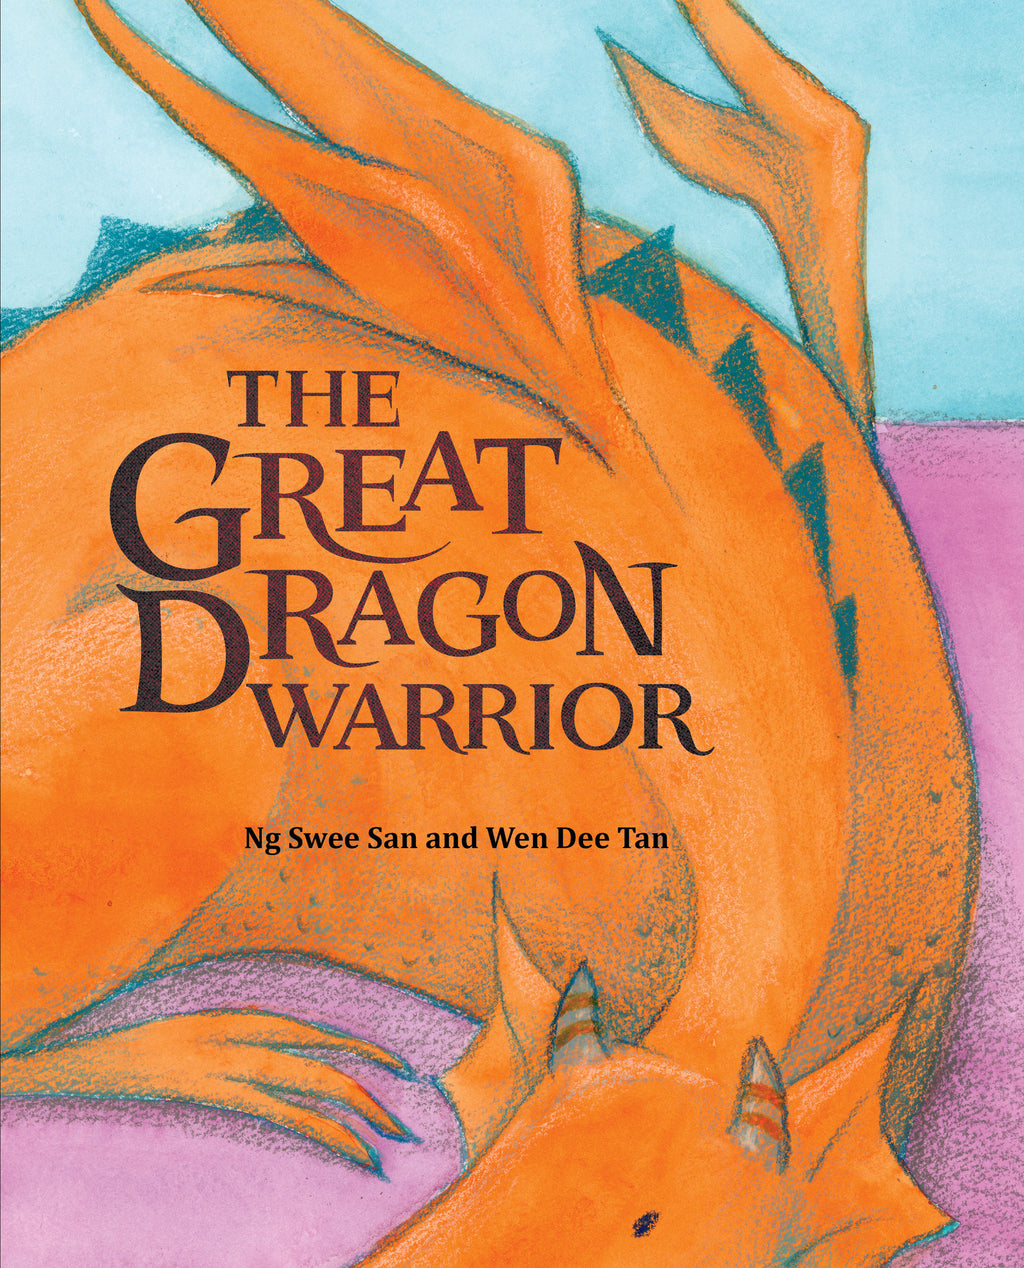 The Great Dragon Warrior